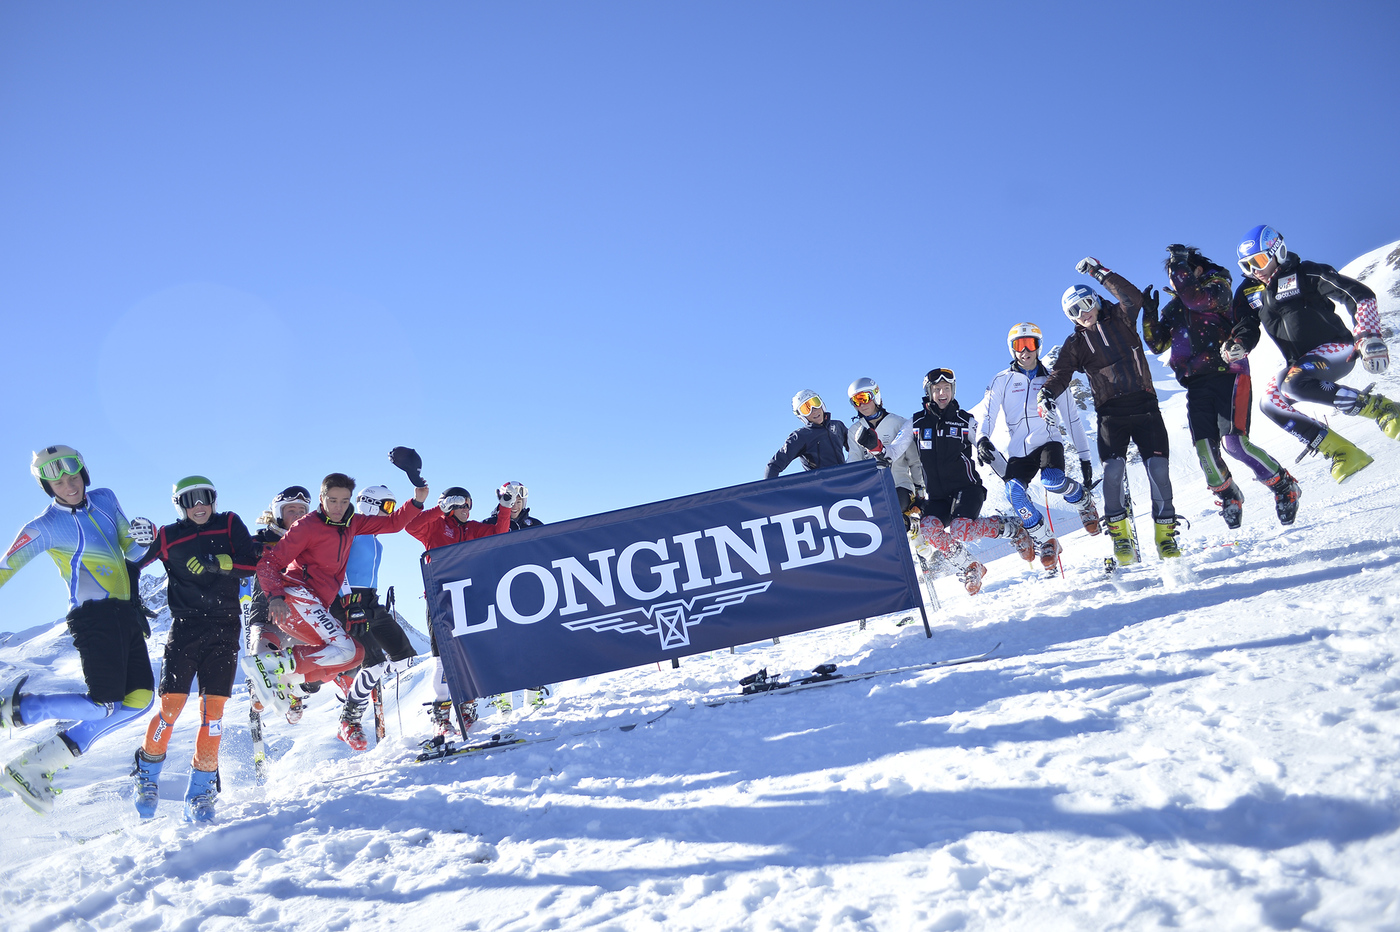 Longines Alpine Skiing Event: The Longines Future Ski Champion 2013 12